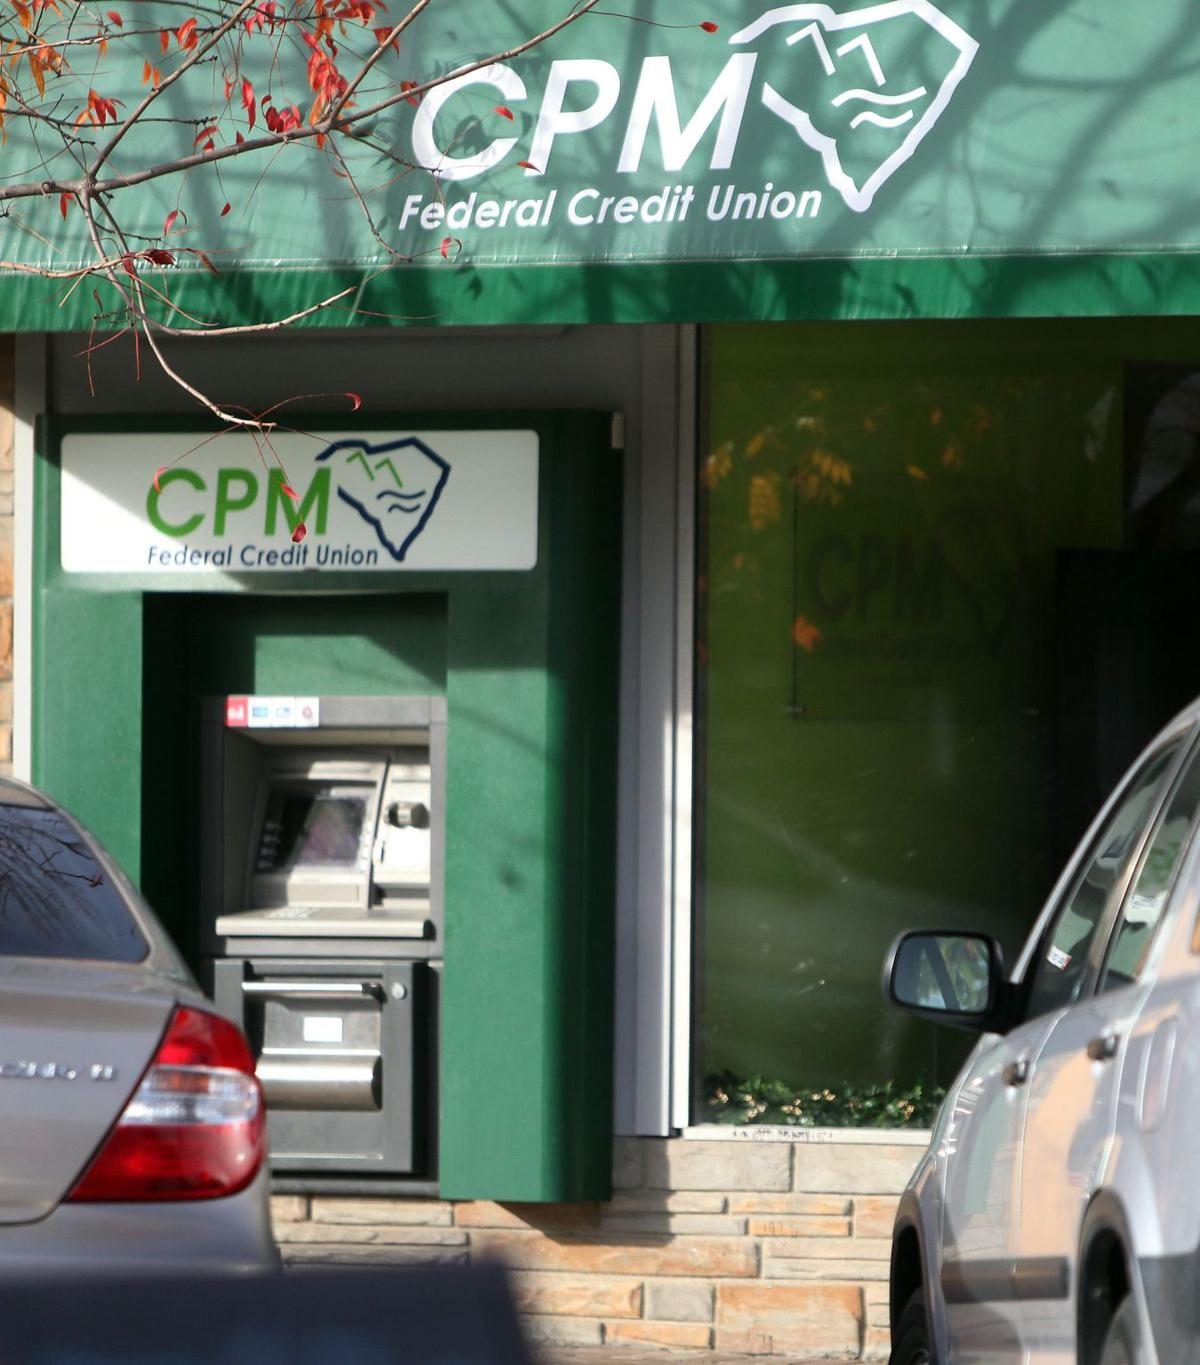 CPM to close 3 branch offices Credit union cites need for tech investment